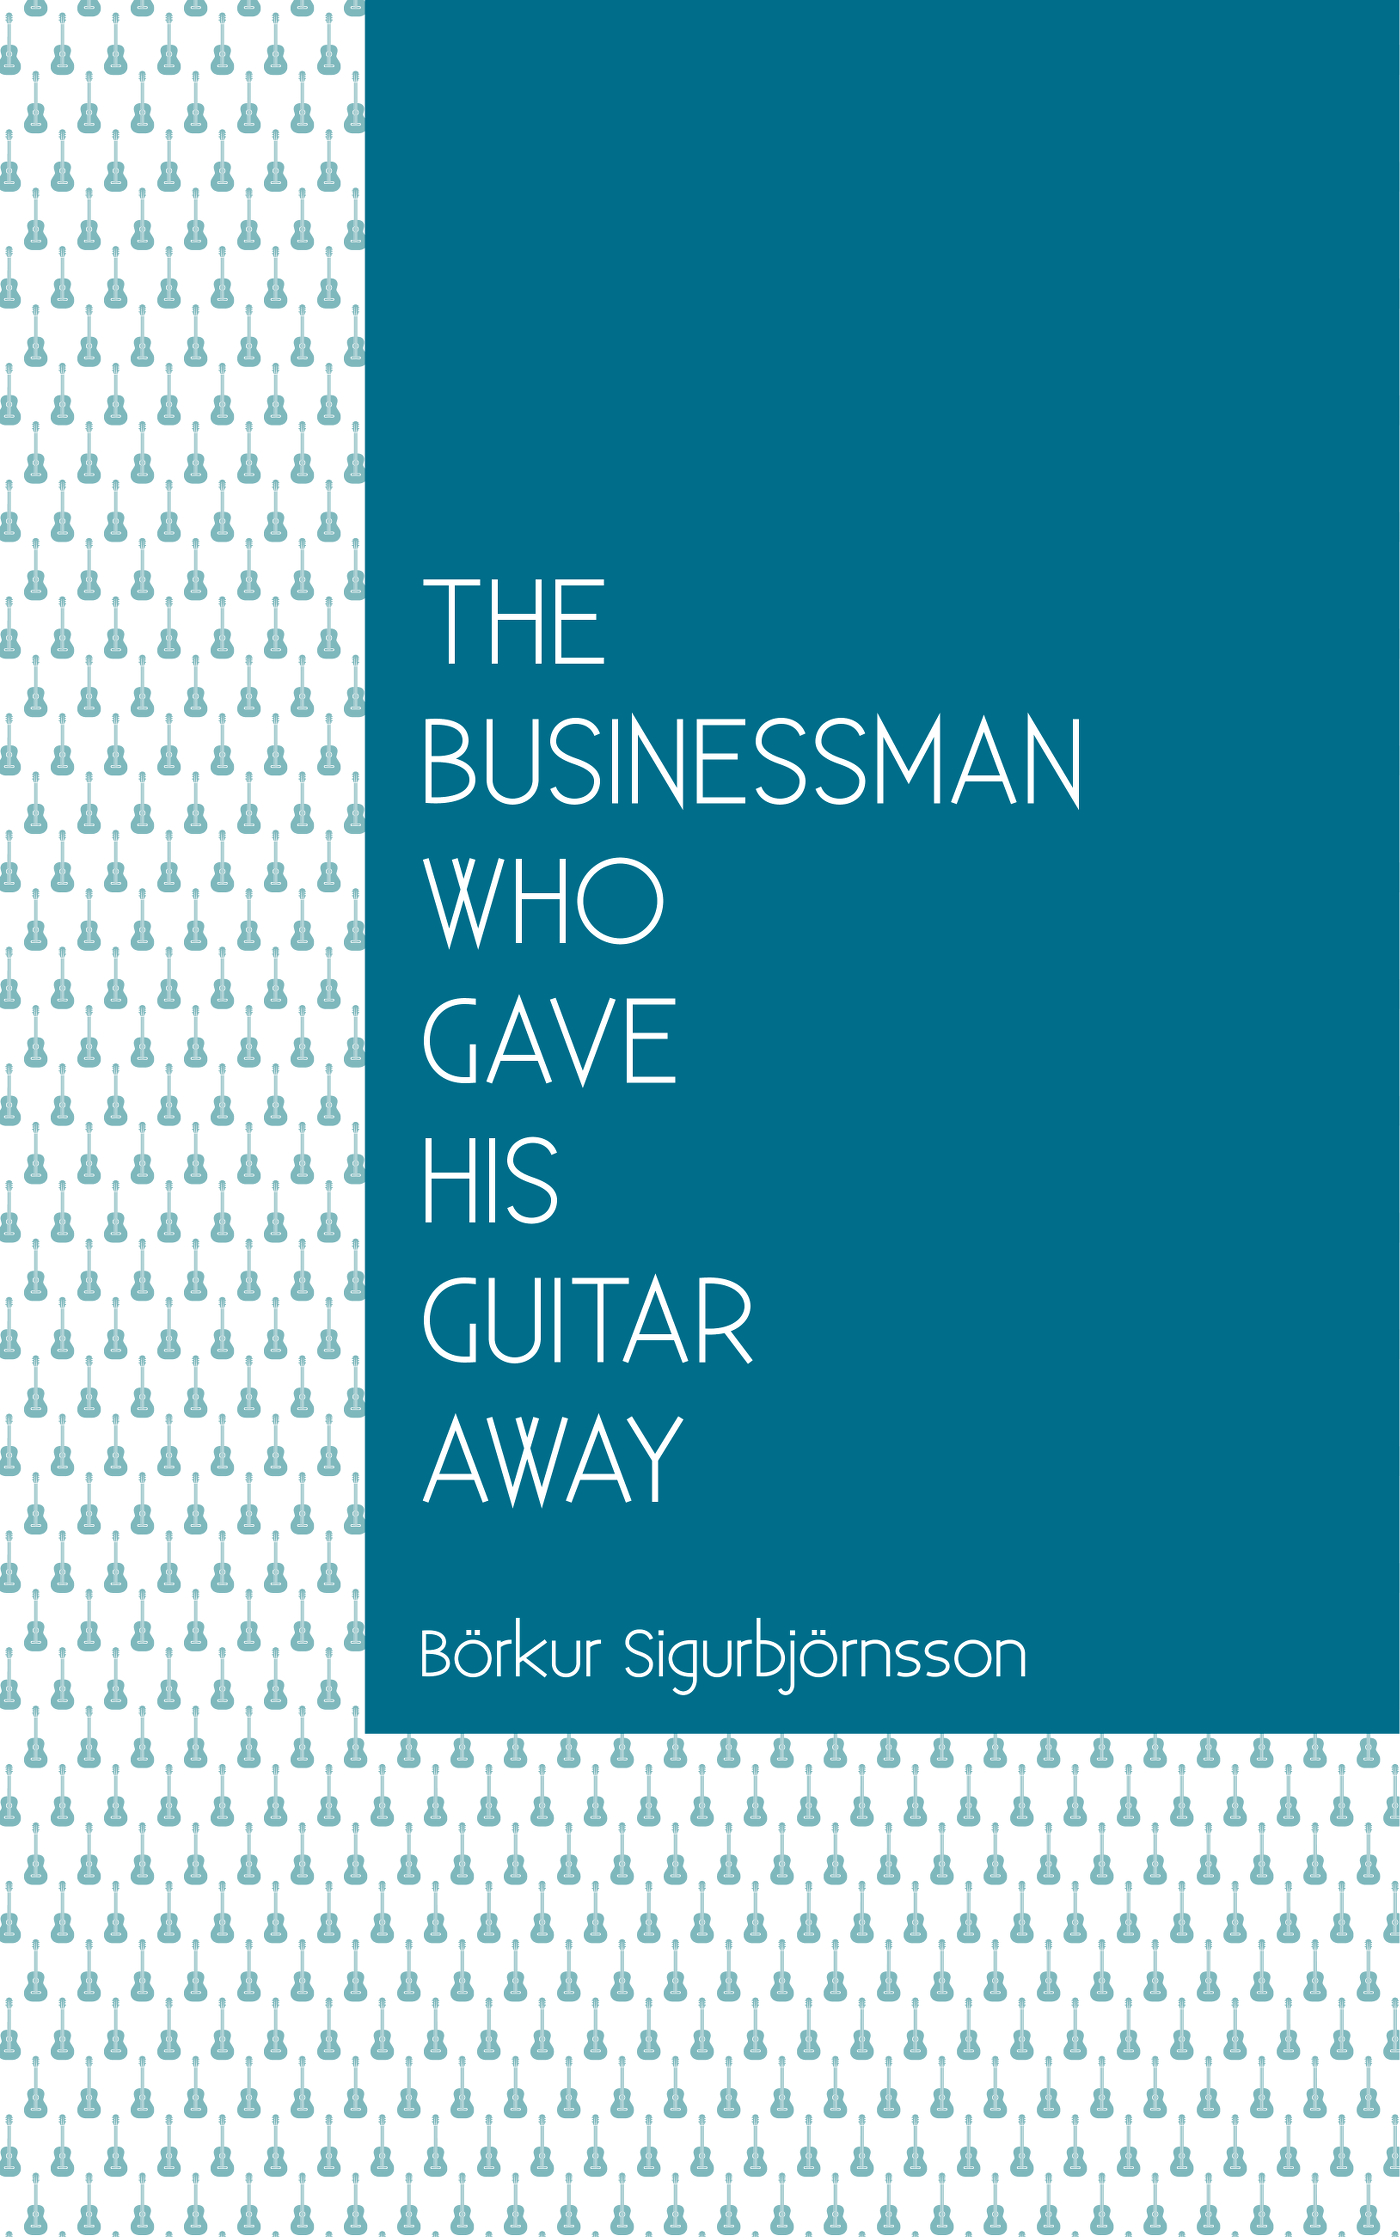 The Businessman Who Gave His Guitar Away -- Cover by Ana Piñeyro